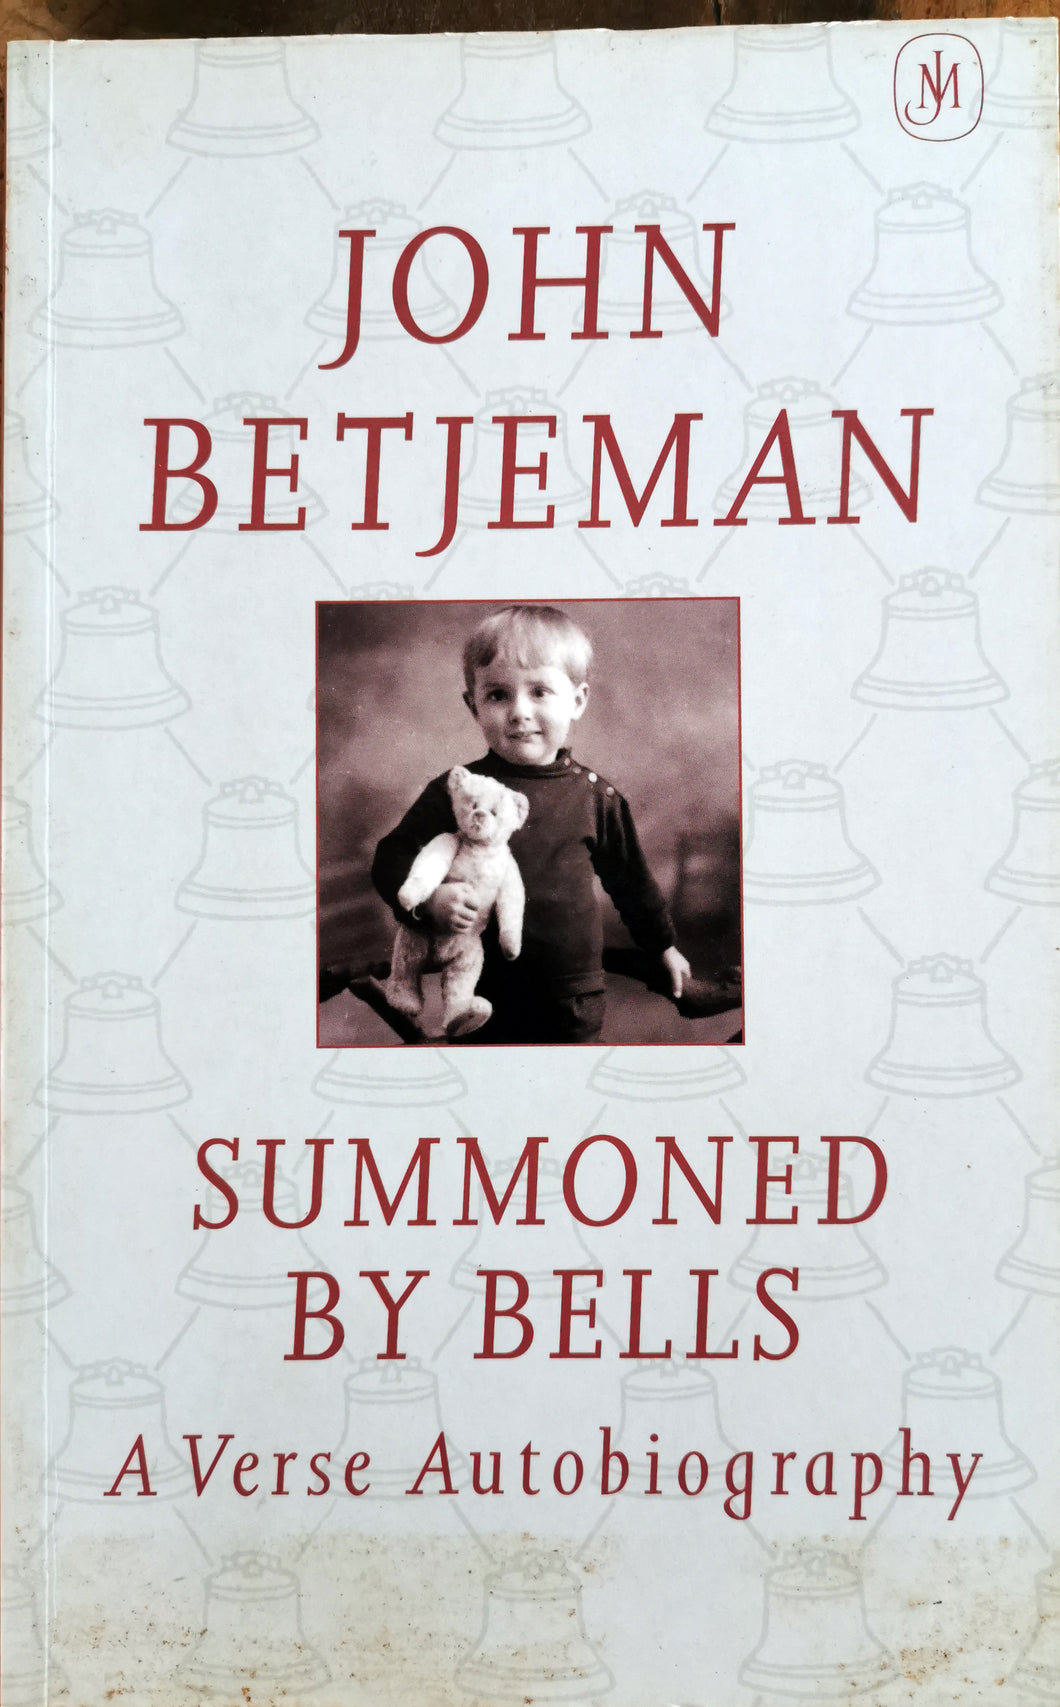 John Betjeman - Summoned by Bells (A Verse Autobiography)